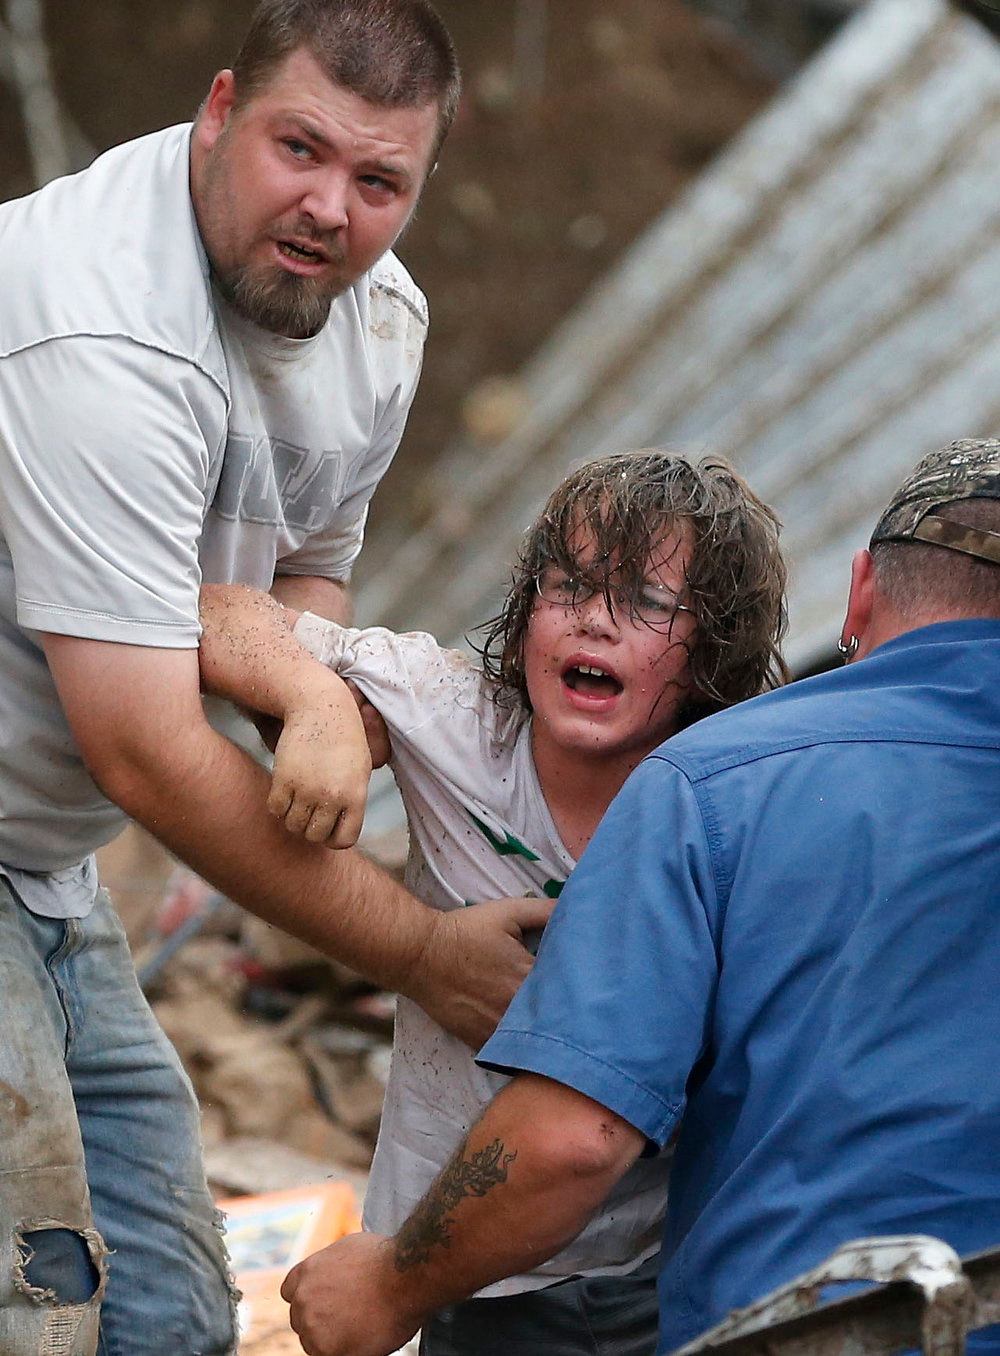 . A child calls to his father after being pulled from the rubble of the Tower Plaza Elementary School following a tornado in Moore, Okla., Monday, May 20, 2013. A tornado as much as a mile (1.6 kilometers) wide with winds up to 200 mph (320 kph) roared through the Oklahoma City suburbs Monday, flattening entire neighborhoods, setting buildings on fire and landing a direct blow on an elementary school. (AP Photo Sue Ogrocki)